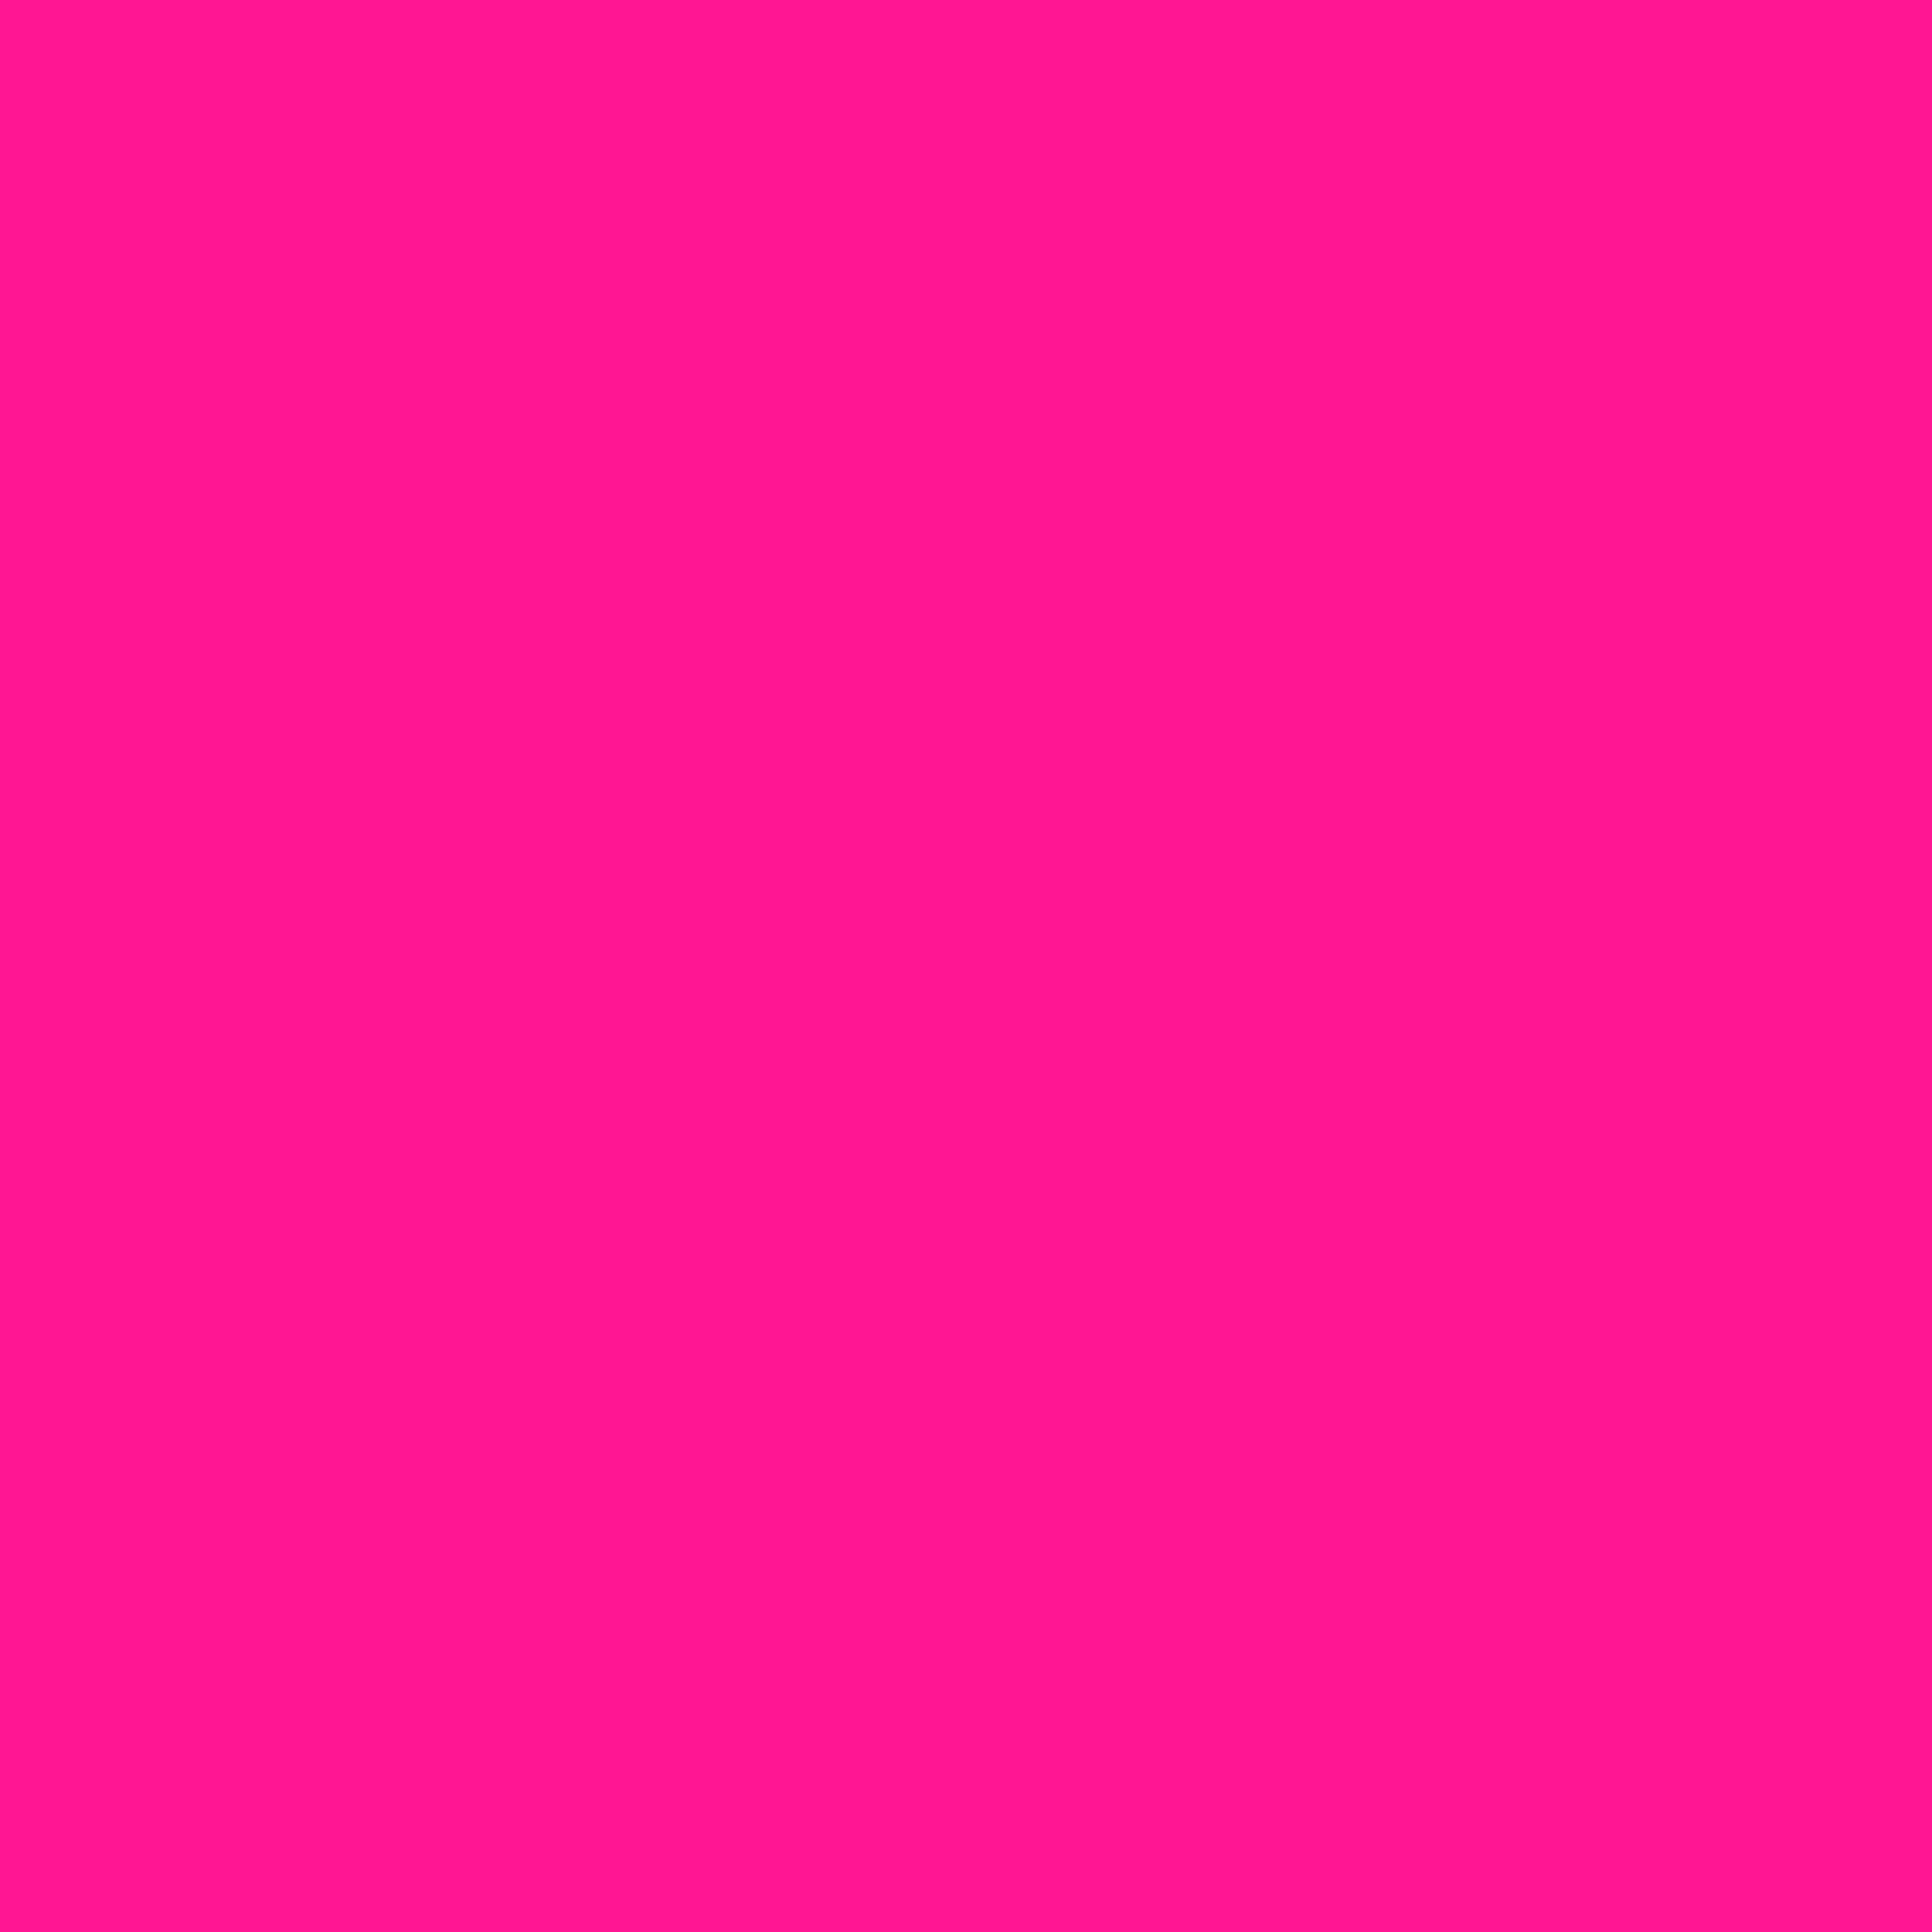 3600x3600 Deep Pink Solid Color Background